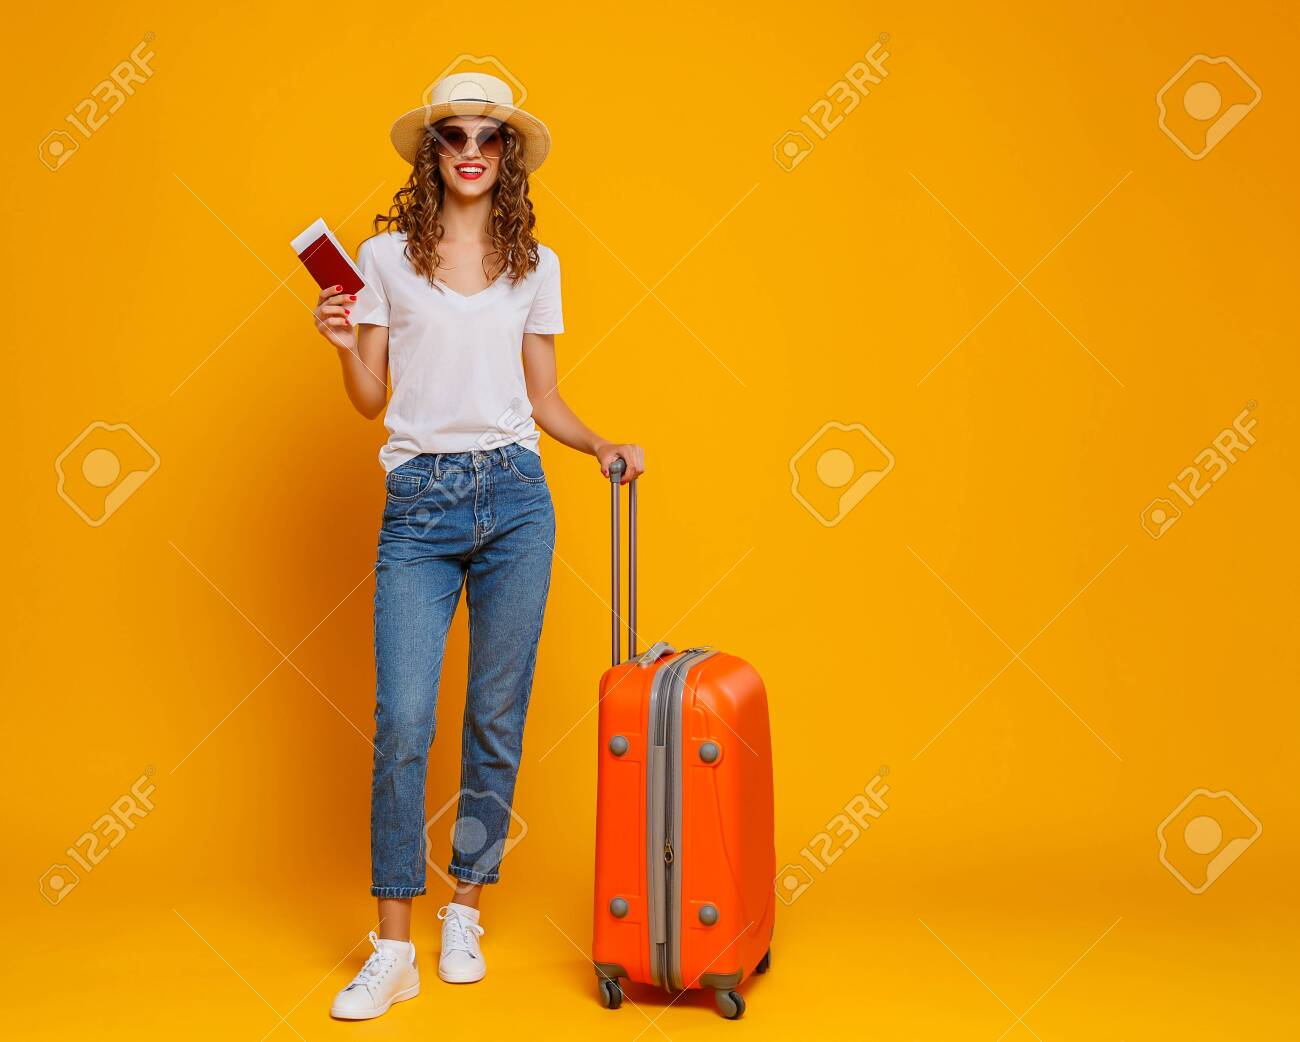 concept of travel. happy woman girl with suitcase and passport on yellow colored background - 124463473